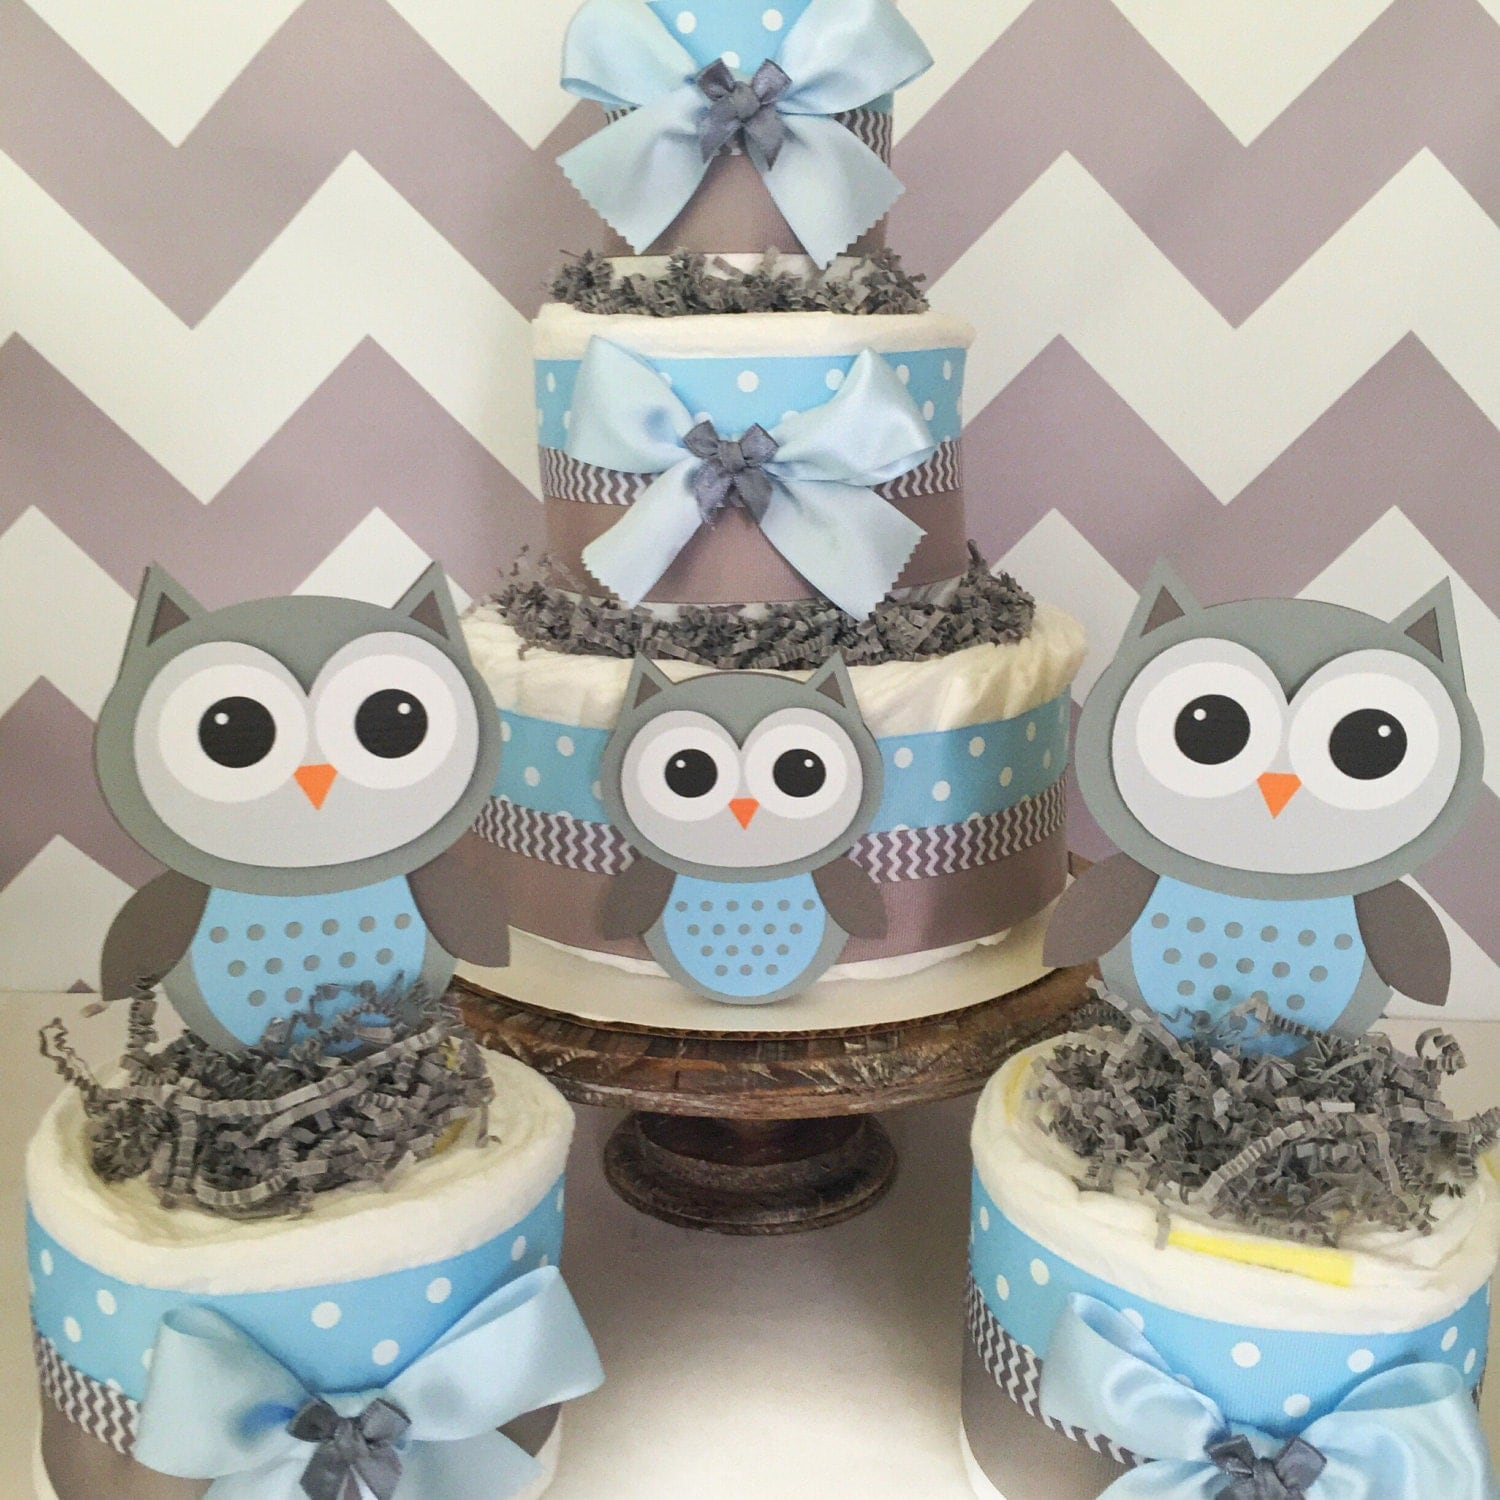 Set of 3 Owl Diaper Cake Centerpieces in Blue and Gray Owl Baby